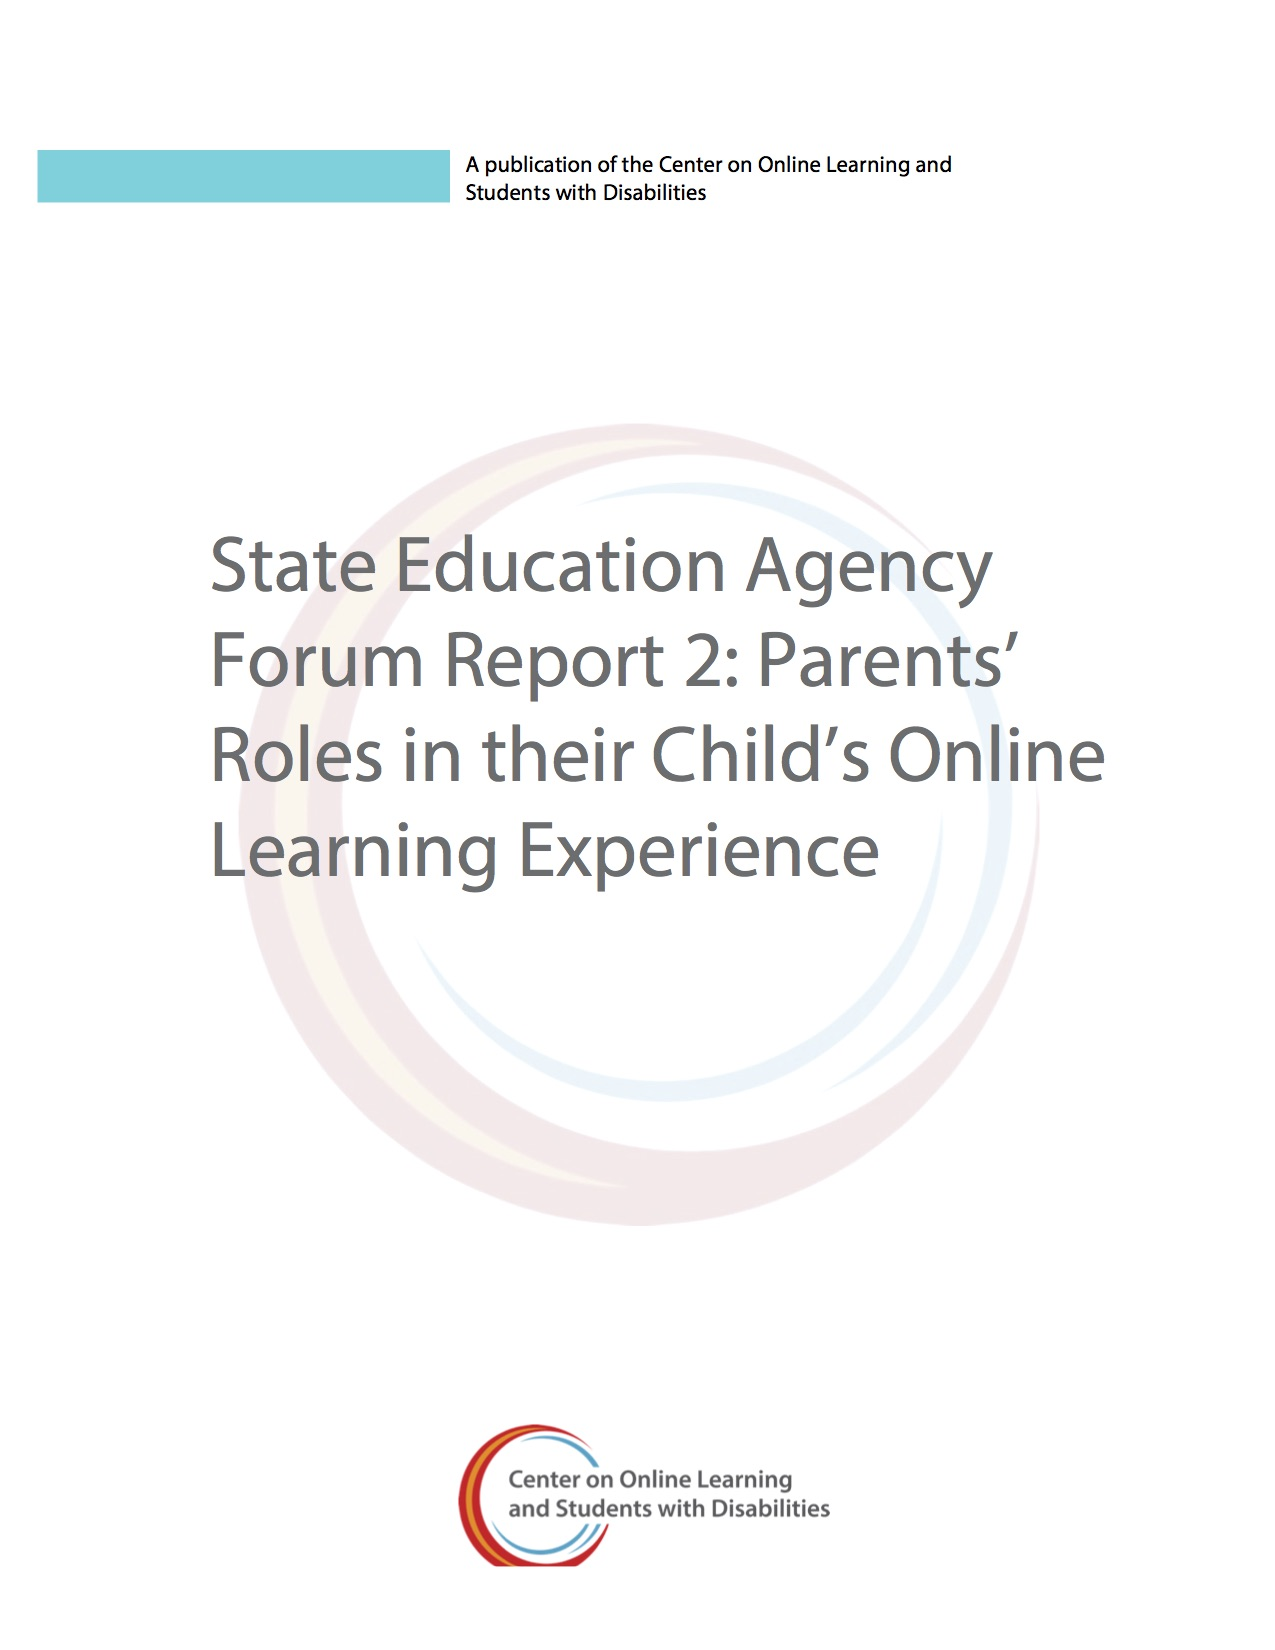 State Education Agency Forum Report 2: Parents' Roles In Their Child's Online Learning Experience